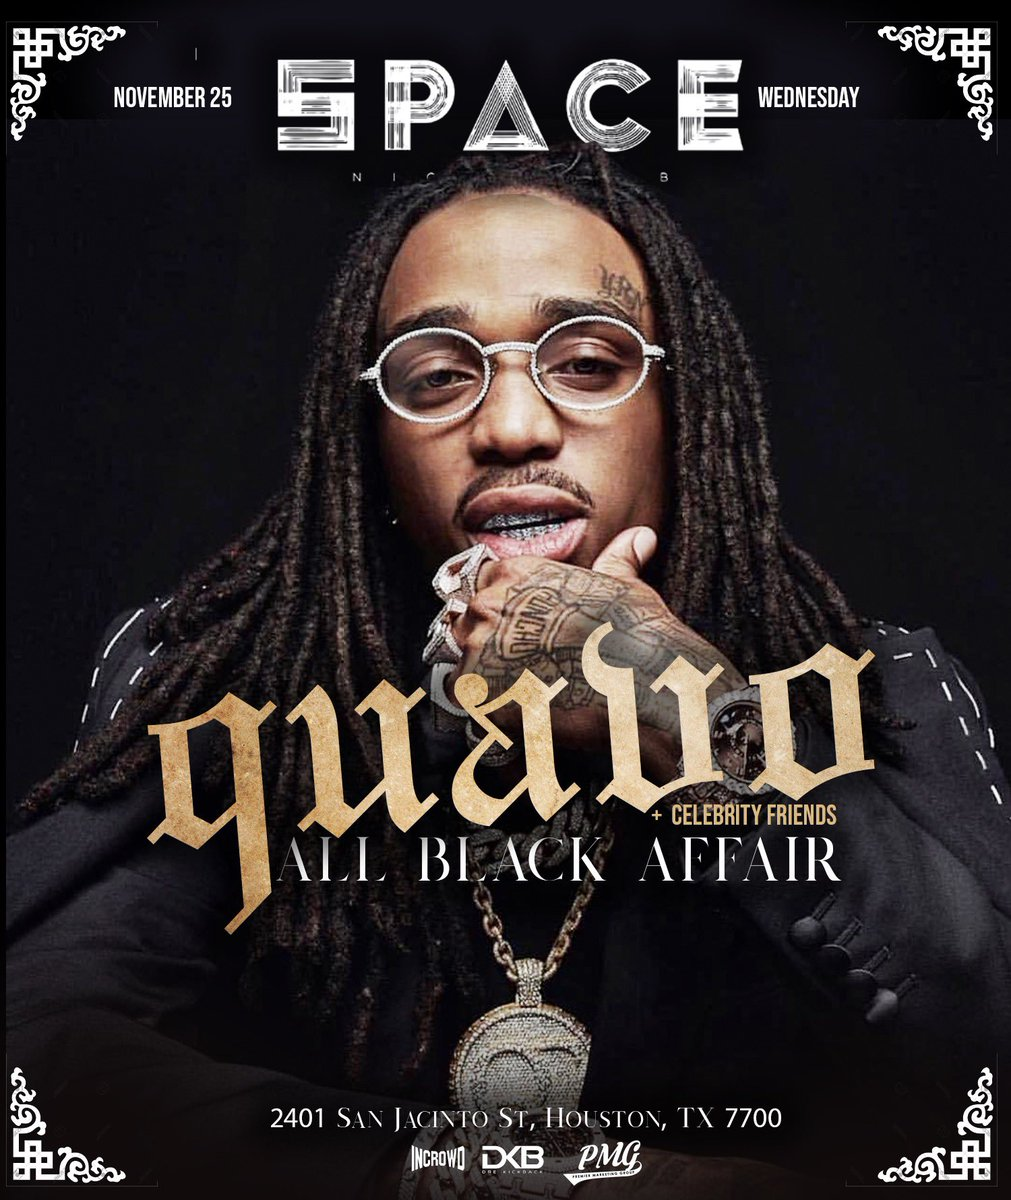 Huncho Houston All Black Drip 🤞🏾 Houston TX, Wednesday November 25th it's the ALL BLACK Huncho takeover @spacehou, meet me there. Tickets available at hunchodayhouston.com @ej_premier @the_investmentspecialist movie time